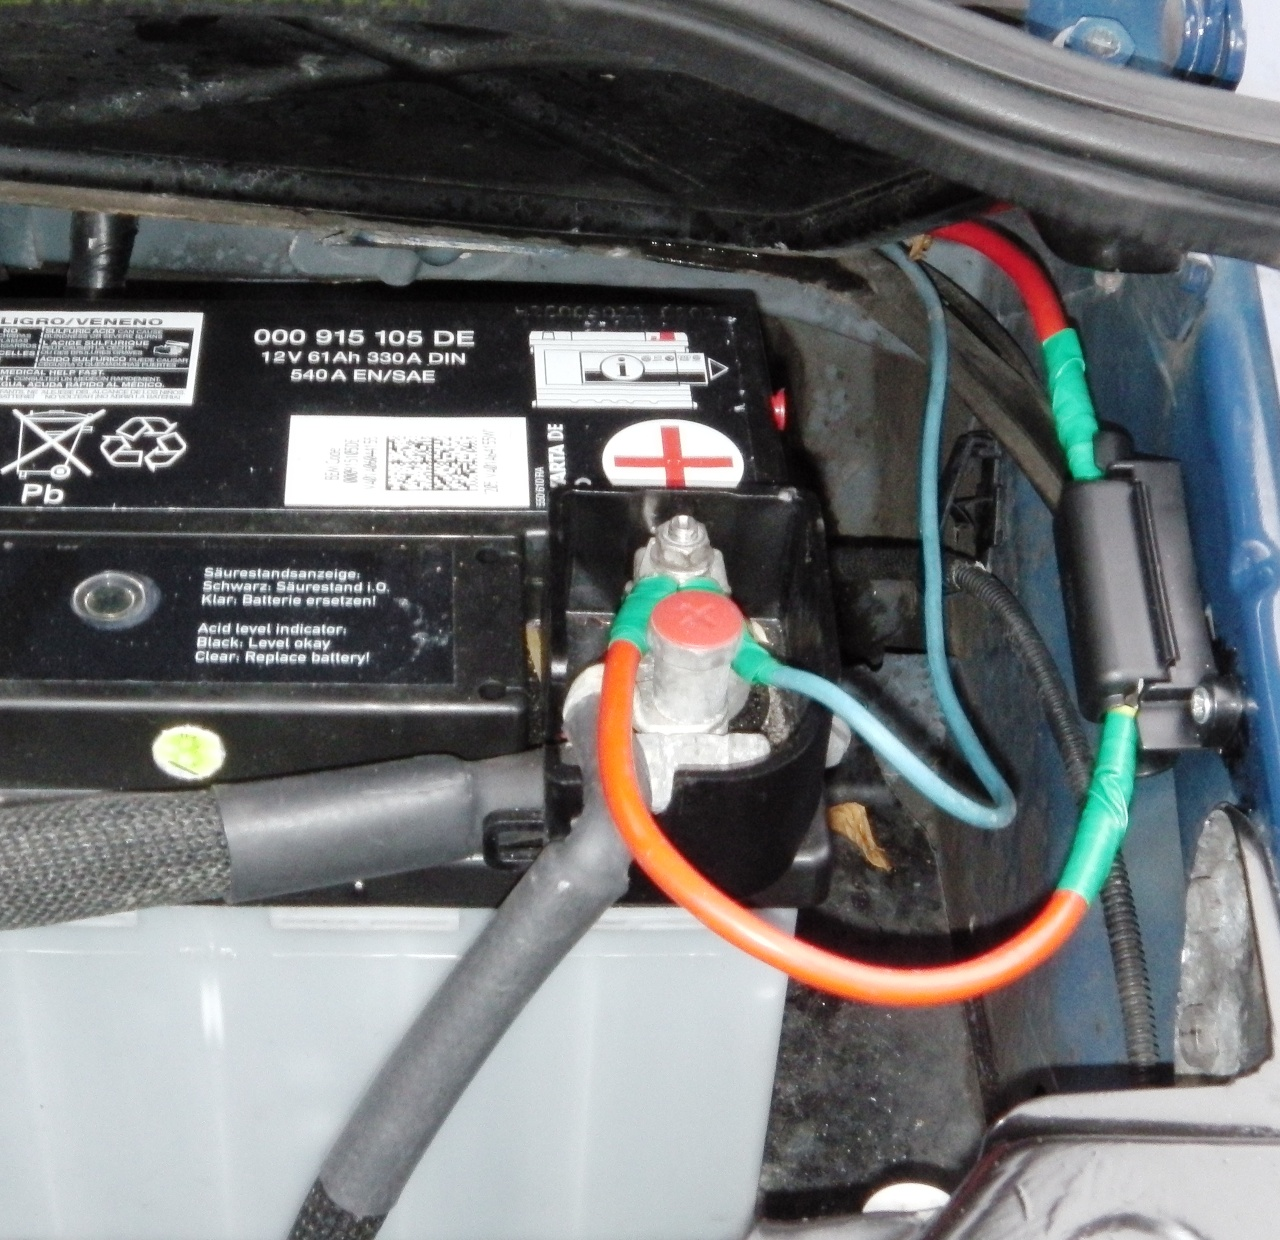 Split Charge Relay Vw T5 Wiring A Transporter We Then Installed Smart System And Auxiliary Leisure Battery Van Conversionvw T4 High Quality